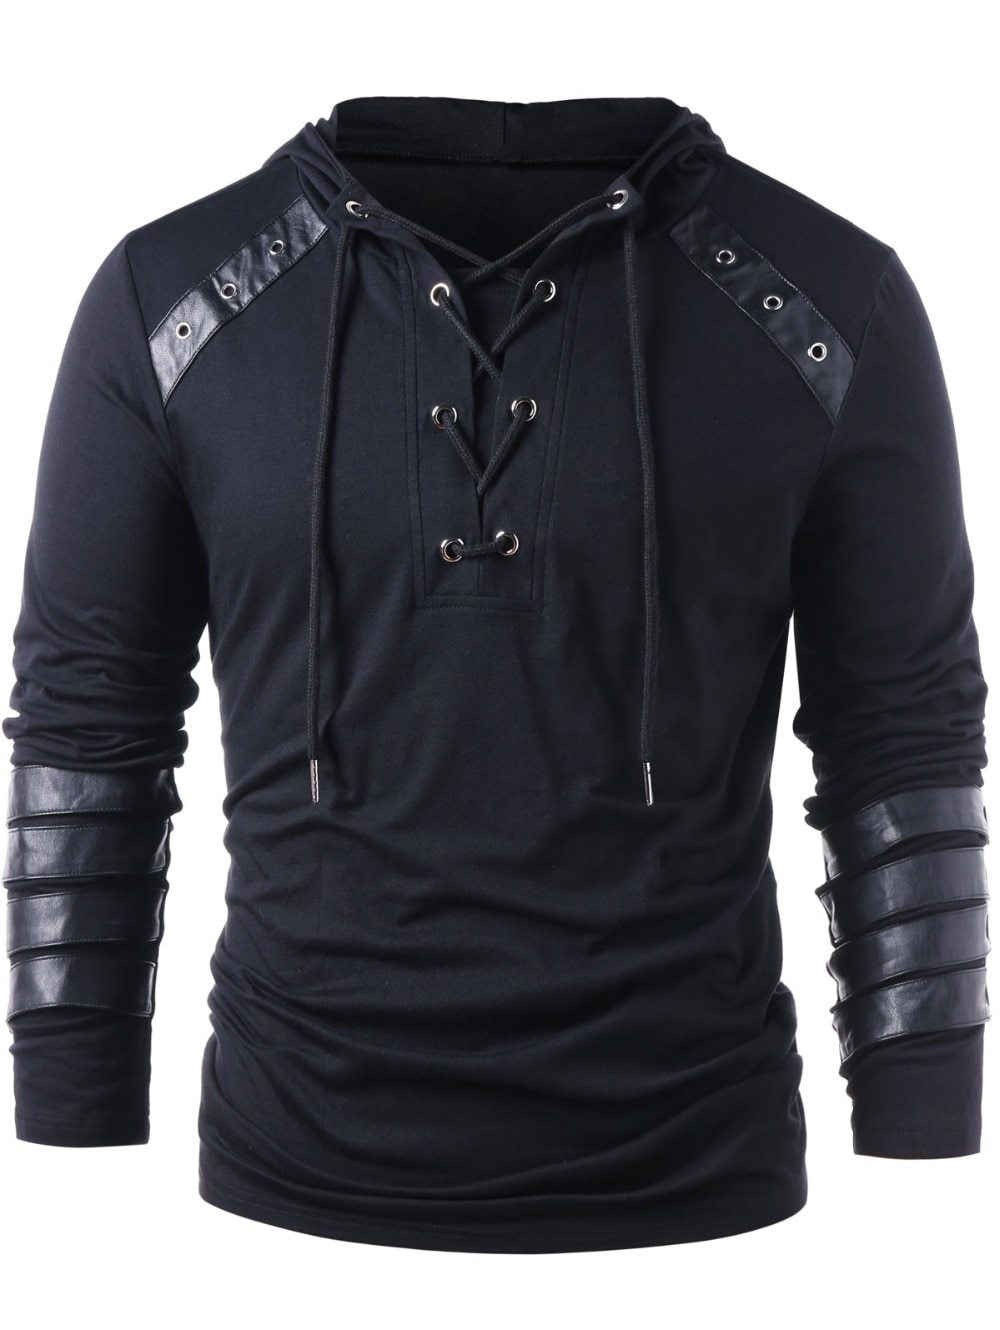 Faux Leather Lace Up Hoodie 2018 New Style Fashion New Halloween Mendresslliy-dresslliy